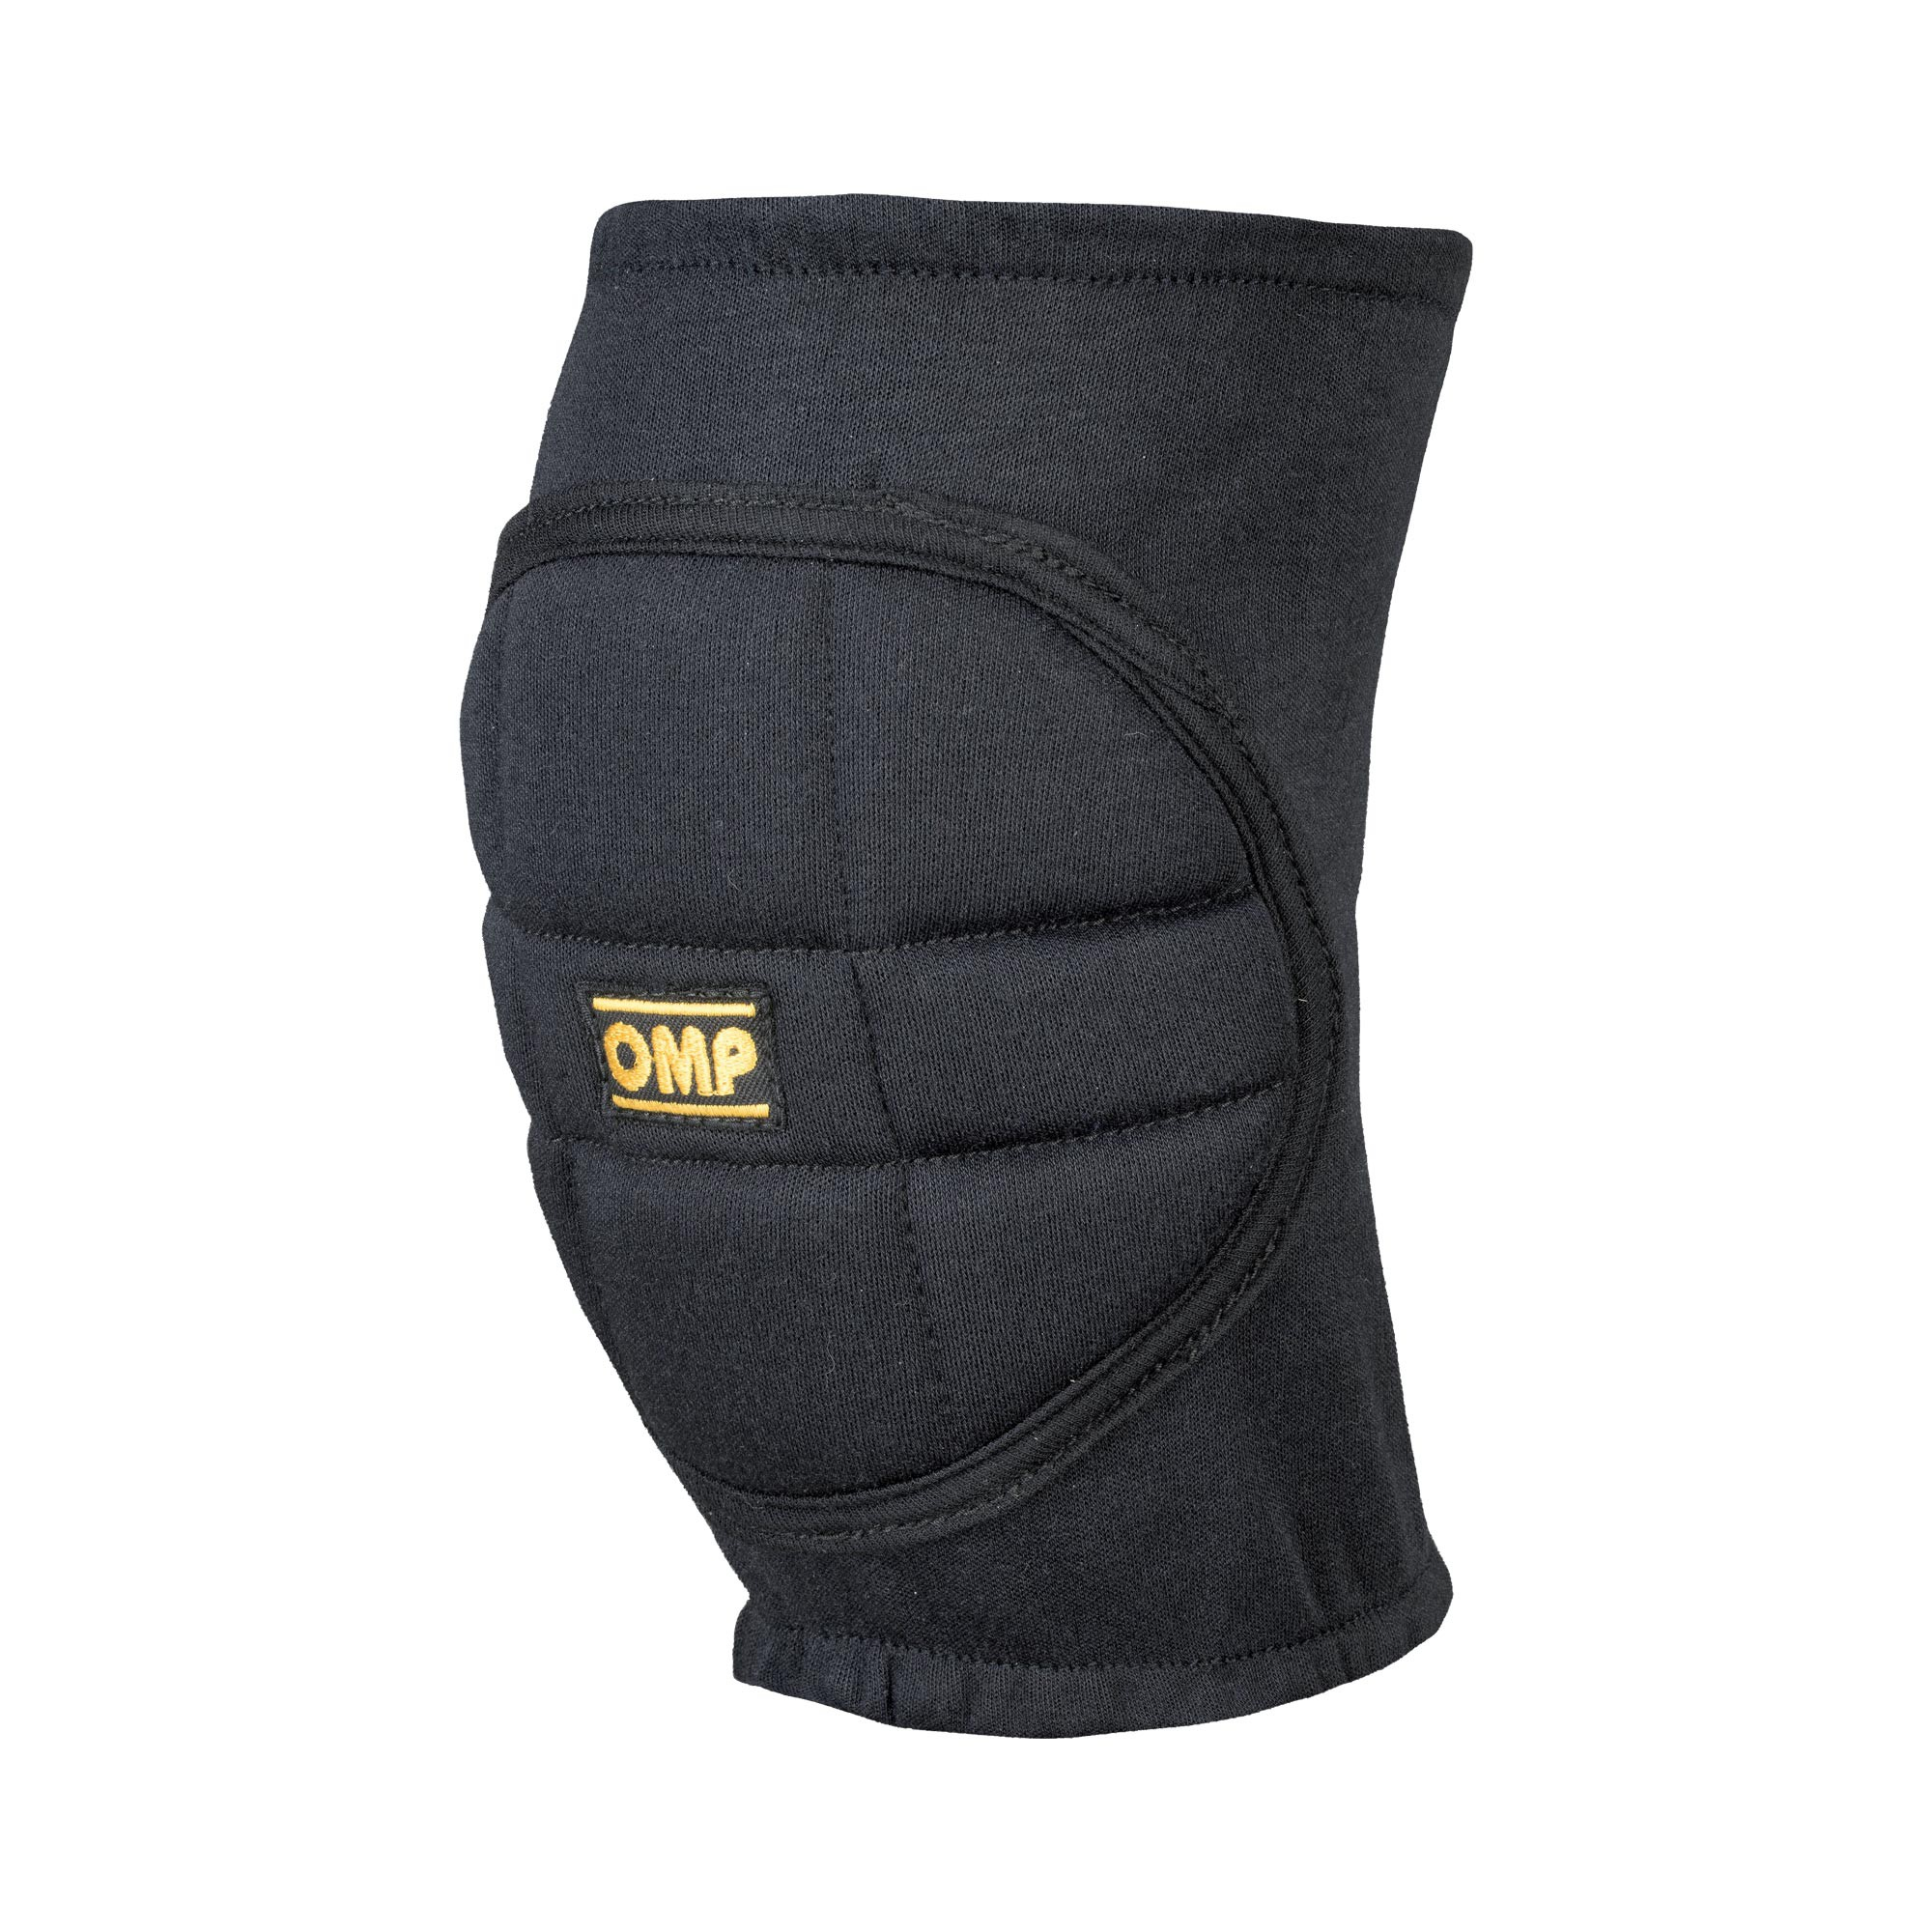 FIRE RESISTANT ACCESSORIES NEW NOMEX KNEED PADS BLACK ONLY